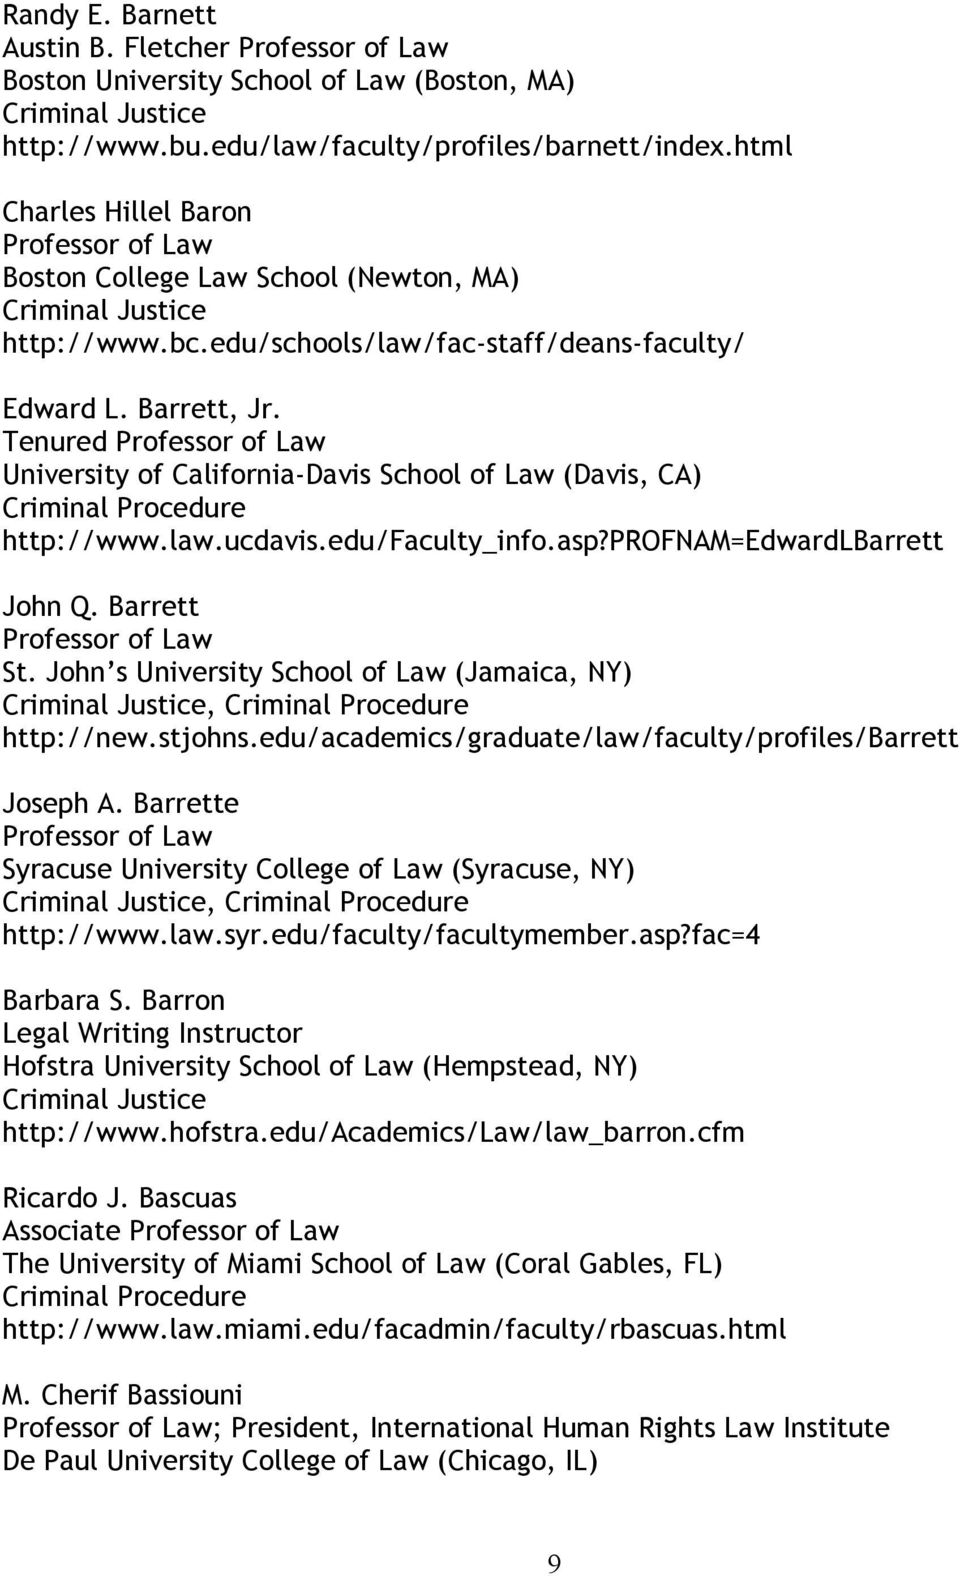 Tenured University of California-Davis School of Law (Davis, CA) http://www.law.ucdavis.edu/faculty_info.asp?profnam=edwardlbarrett John Q. Barrett St.